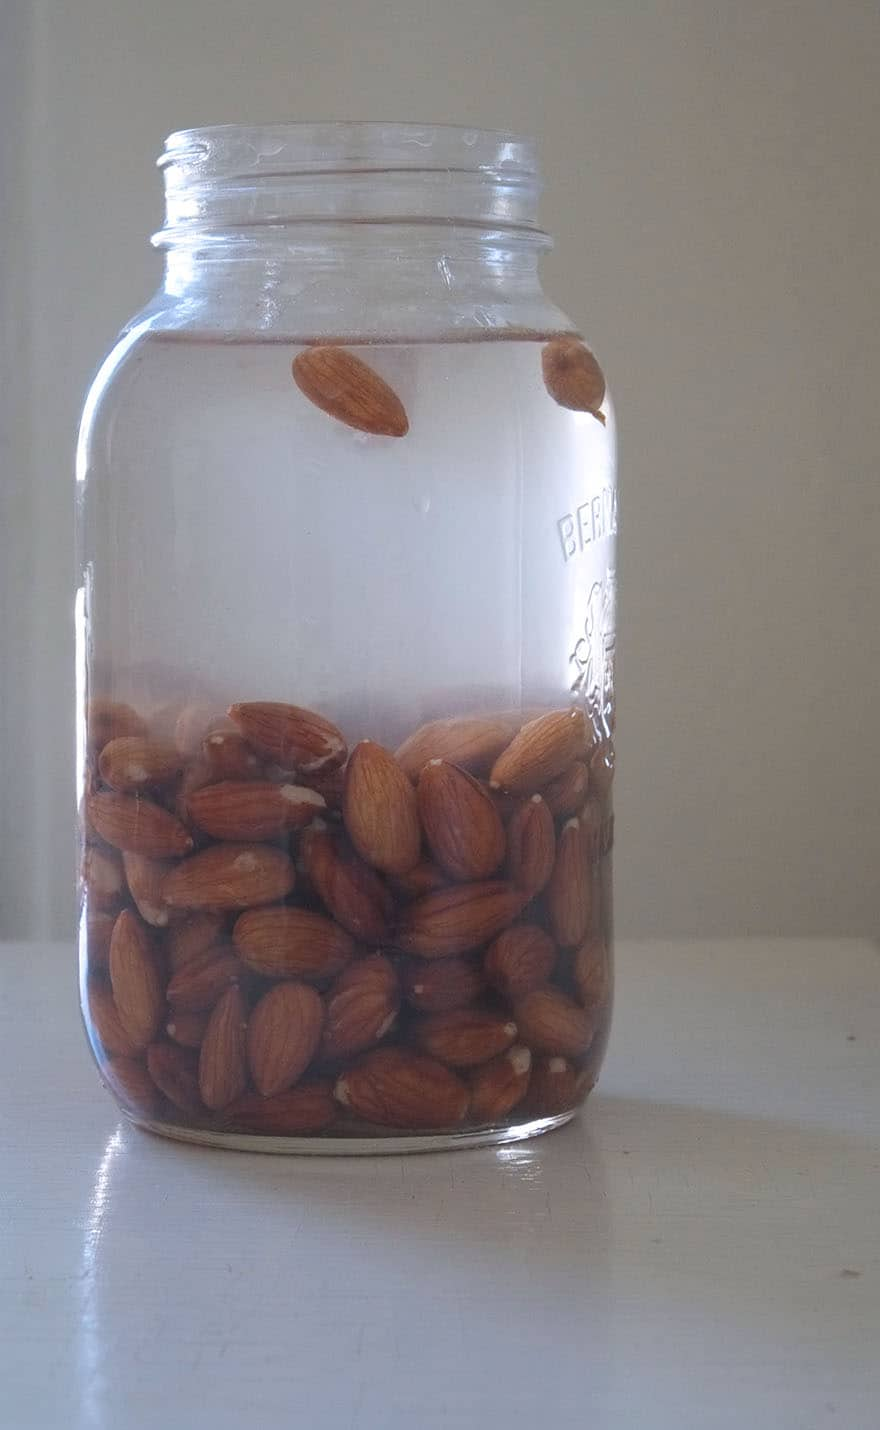 soaking almonds for almond milk